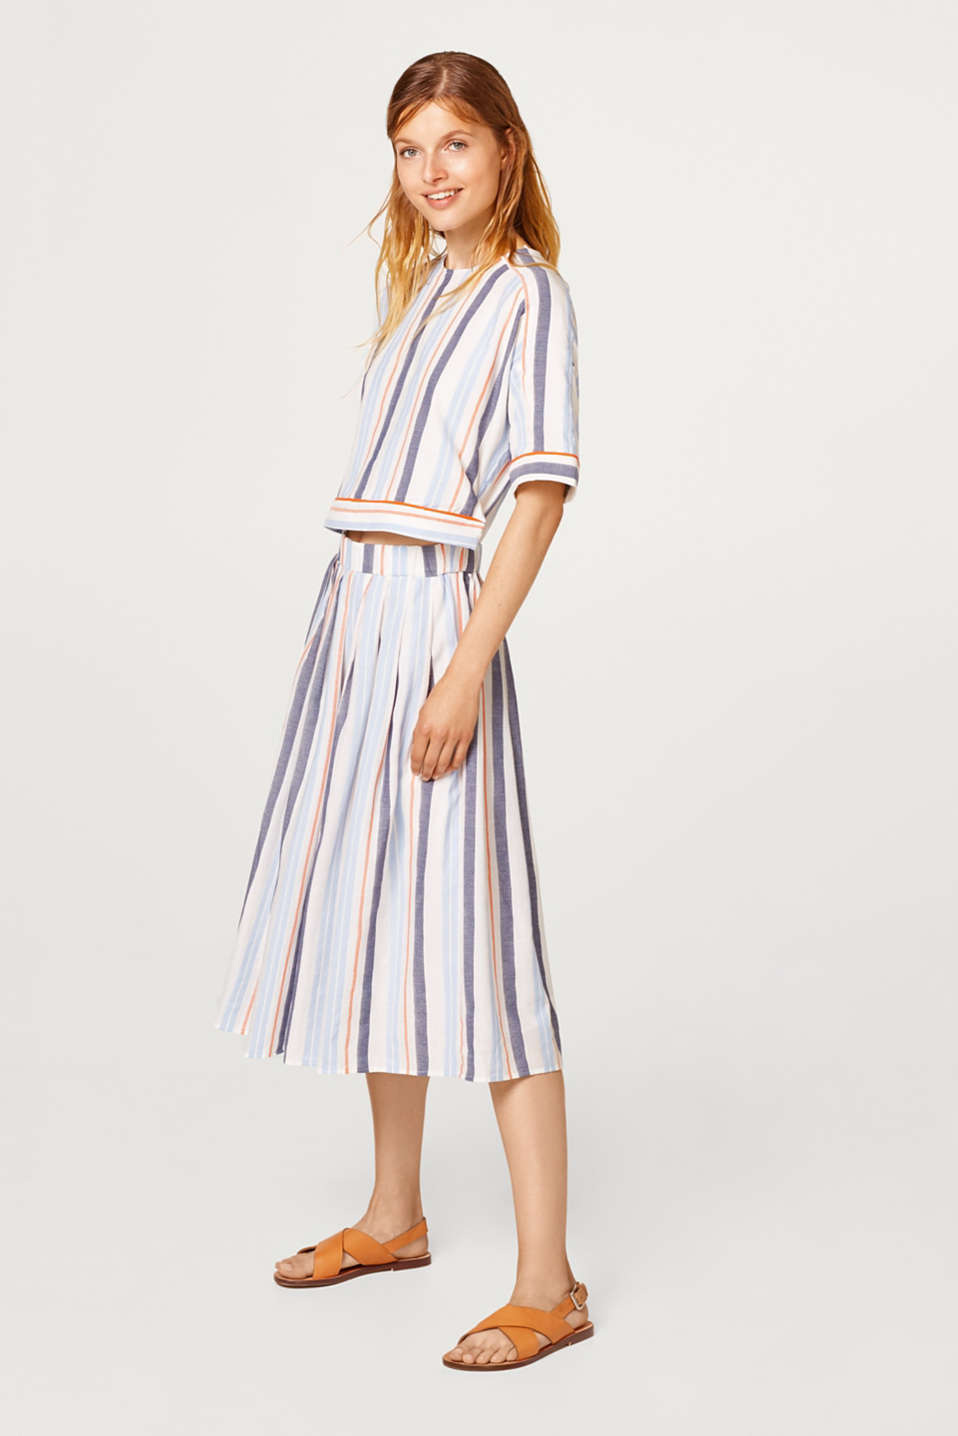 Dress in a two-piece look, 100% cotton